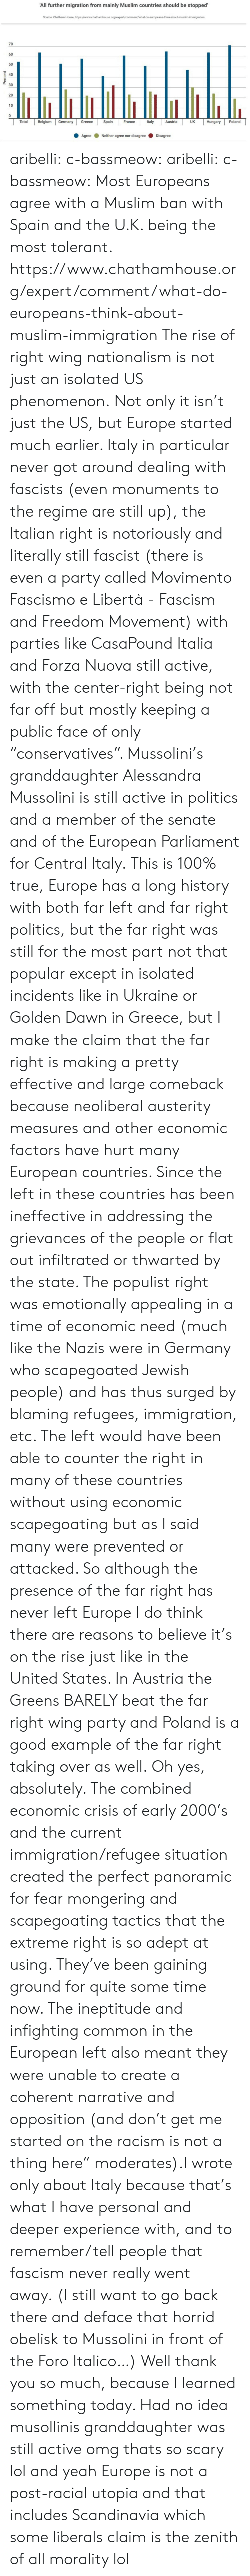 """Mongering: 'All further migration from mainly Muslim countries should be stopped  Source: Chatham House, https://www.chathamhouse.org/expert/comment/what-do-europeans-think-about-muslim-immigration  70  60  50  40  30  20  10  Total Belgium Germany GreeceSpin FranceayraUK ungary Poland  AgreeNeither agree nor disagree Disagree aribelli:  c-bassmeow: aribelli:   c-bassmeow:  Most Europeans agree with a Muslim ban with Spain and the U.K. being the most tolerant.  https://www.chathamhouse.org/expert/comment/what-do-europeans-think-about-muslim-immigration   The rise of right wing nationalism is not just an isolated US phenomenon.  Not only it isn't just the US, but Europe started much earlier. Italy in particular never got around dealing with fascists (even monuments to the regime are still up), the Italianright is notoriously and literally still fascist (there is even a party called Movimento Fascismo e Libertà - Fascism and Freedom Movement) with parties like CasaPound Italia and Forza Nuova still active, with the center-right being not far off but mostly keeping a public face of only """"conservatives"""". Mussolini's granddaughter Alessandra Mussolini is still active in politics and a member of the senate and of the European Parliament for Central Italy.   This is 100% true, Europe has a long history with both far left and far right politics, but the far right was still for the most part not that popular except in isolated incidents like in Ukraine or Golden Dawn in Greece, but I make the claim that the far right is making a pretty effective and large comeback because neoliberal austerity measures and other economic factors have hurt many European countries. Since the left in these countries has been ineffective in addressing the grievances of the people or flat out infiltrated or thwarted by the state. The populist right was emotionally appealing in a time of economic need (much like the Nazis were in Germany who scapegoated Jewish people) and has thus surged by blaming"""